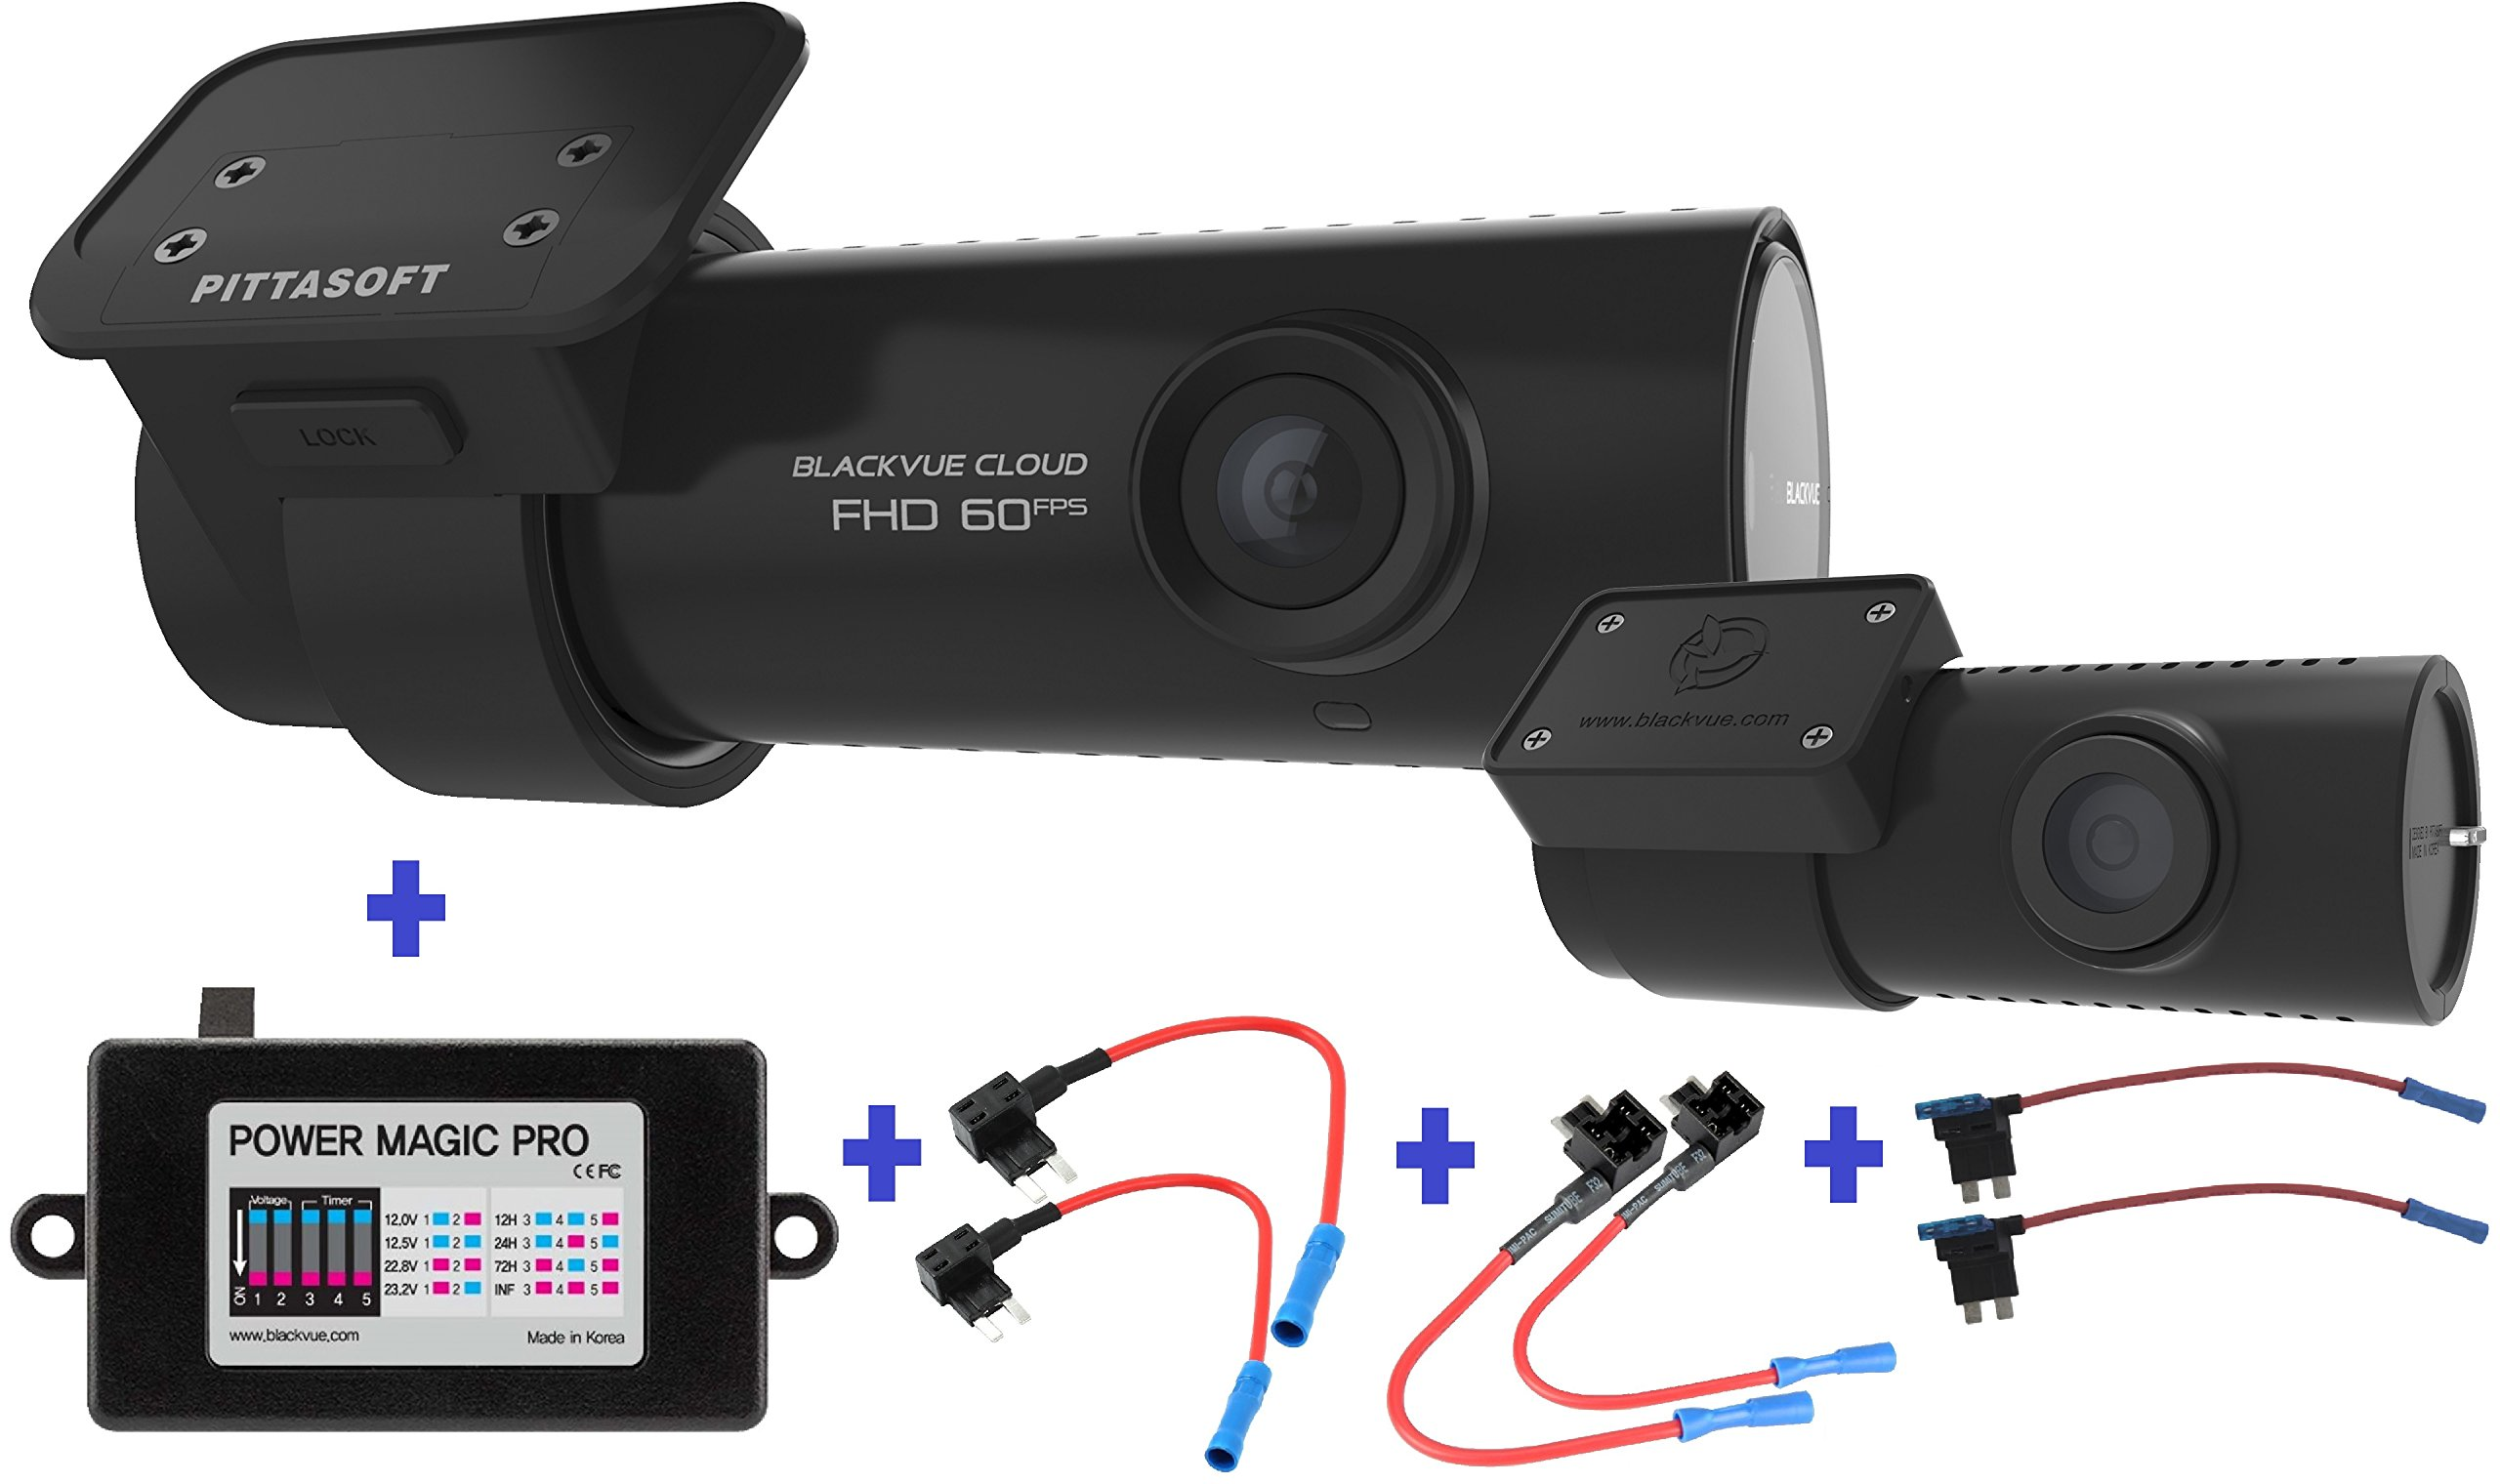 Cheap Blackvue Dr500 Wifi Car Dvr H720p Find R 100 Get Quotations Dr750s 2ch With Power Magic Pro Hardwire Kit 2 Channel 1080p Full Hd